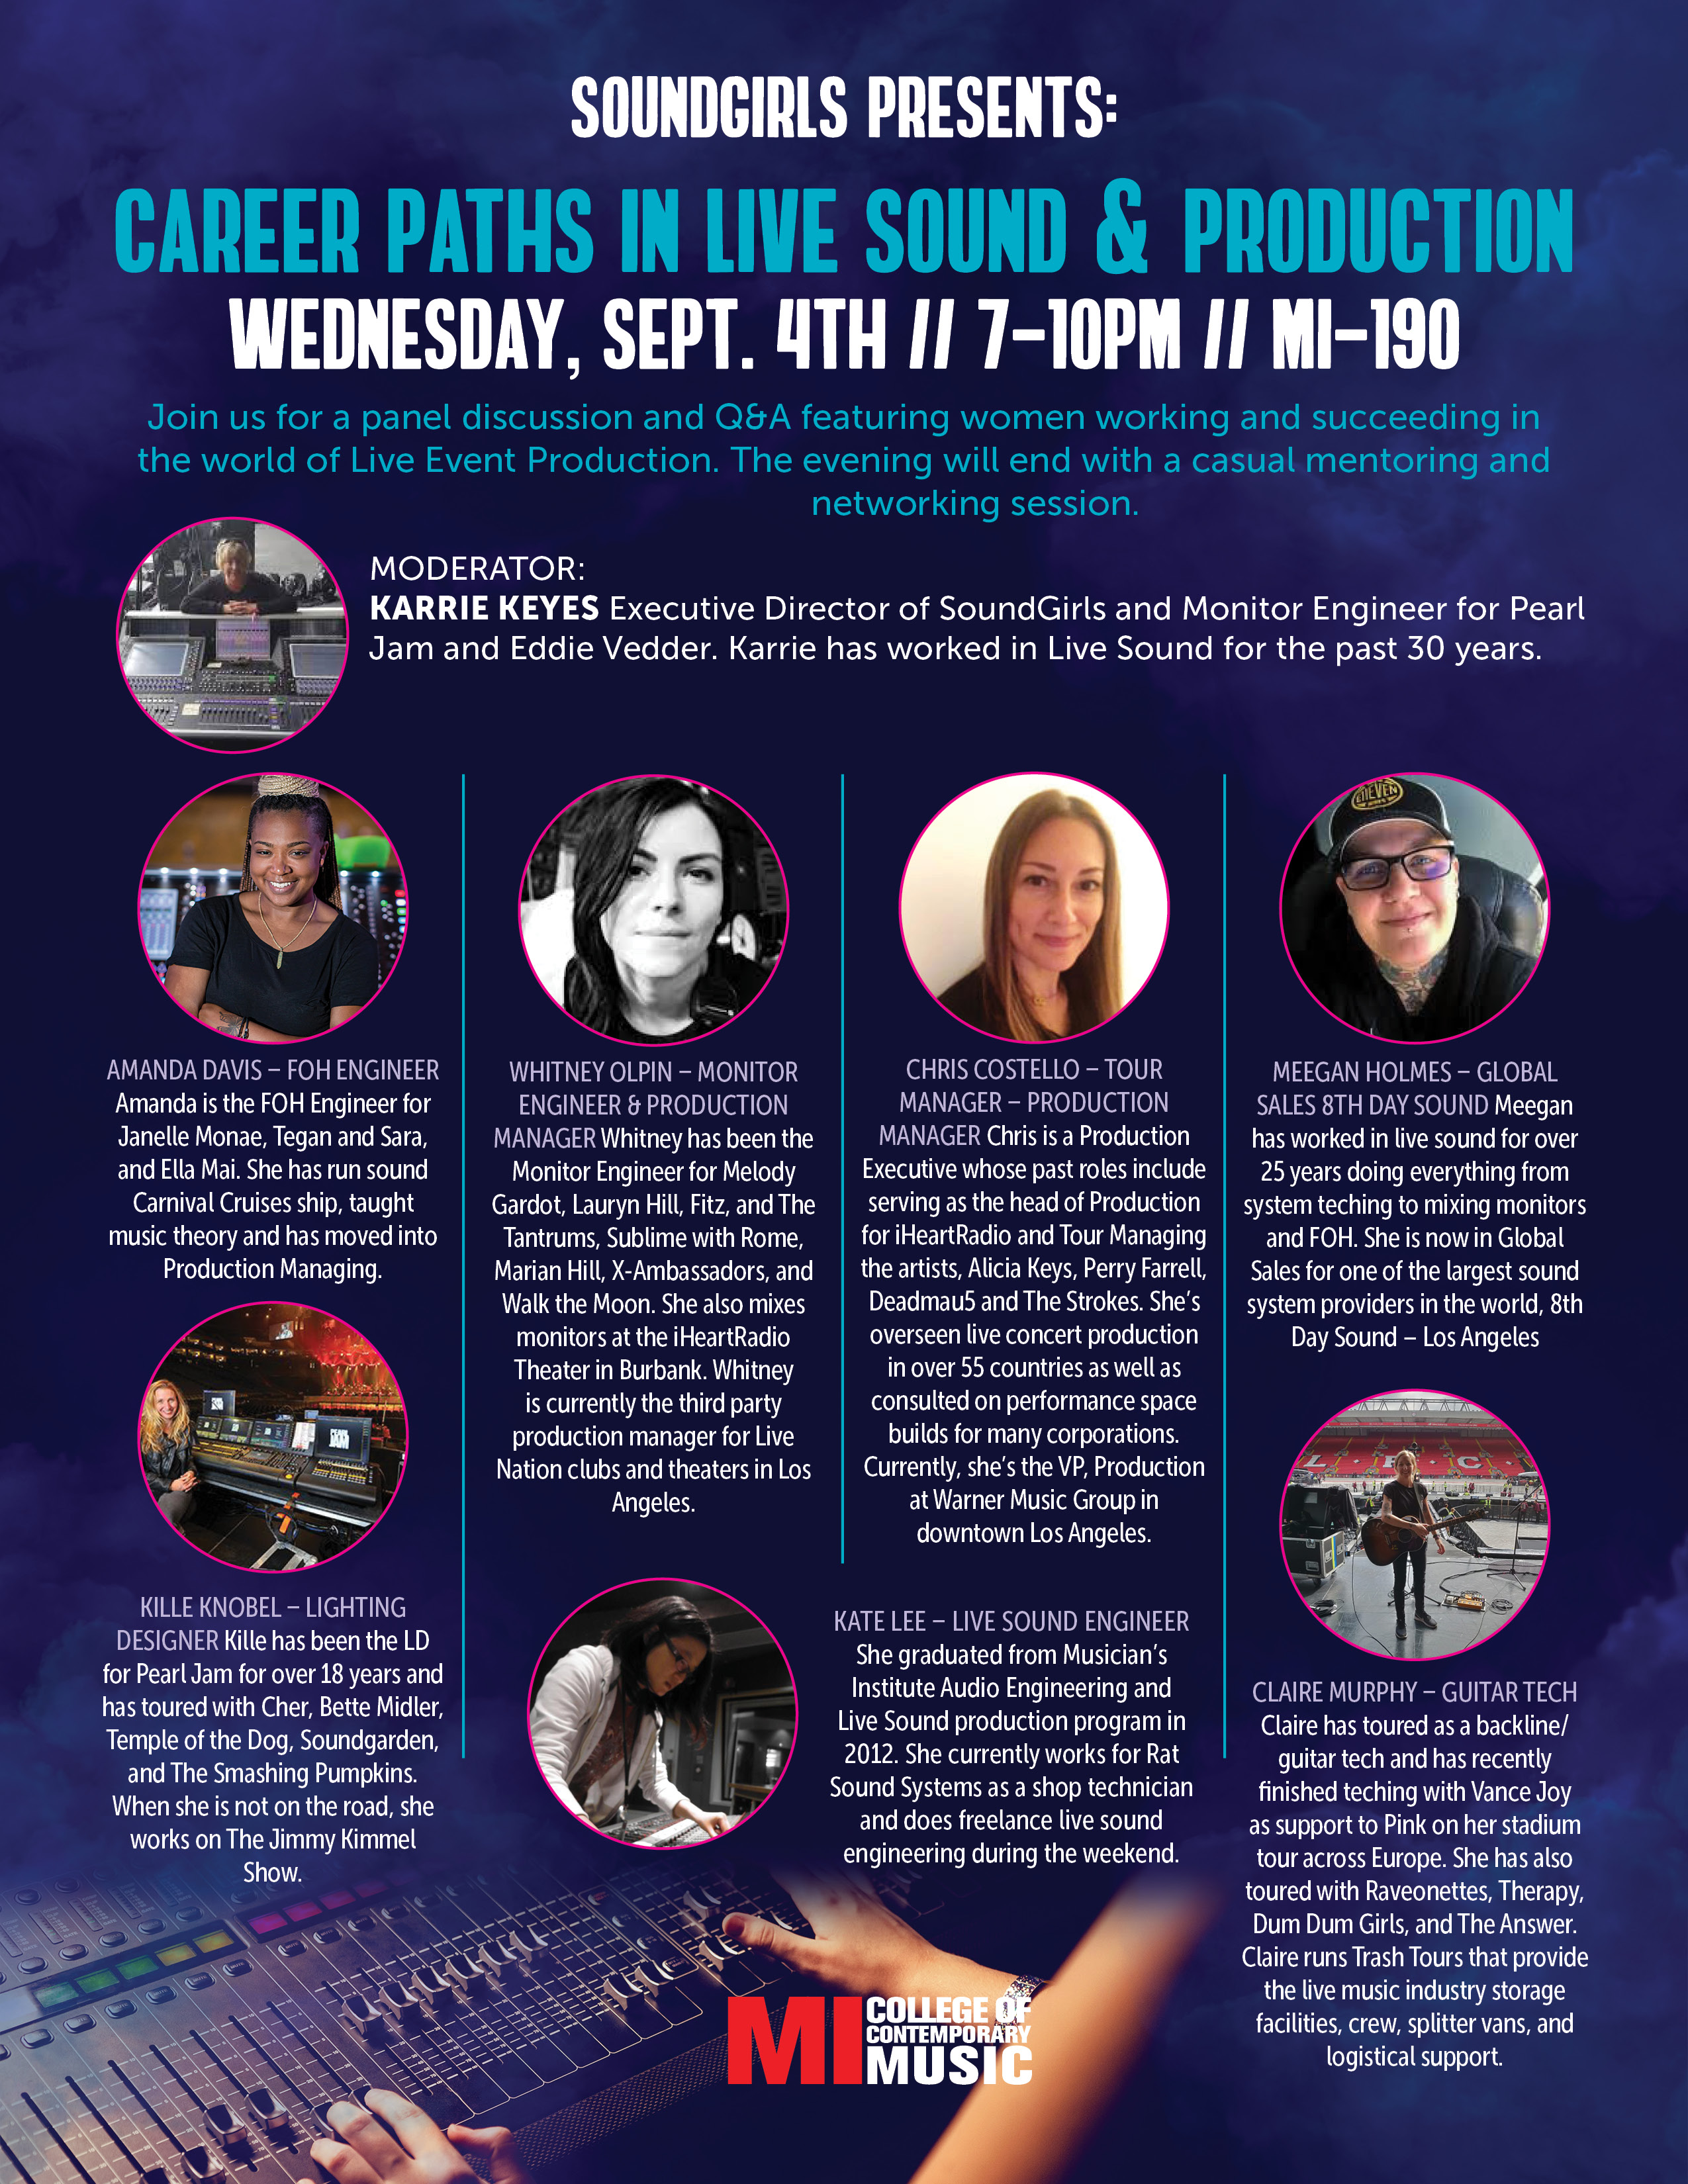 SOUNDGIRLS PRESENTS: CAREER PATHS IN LIVE SOUND & PRODUCTOIN WEDNESDAY, SEPTEMBER 4, 2019, 7 – 10PM